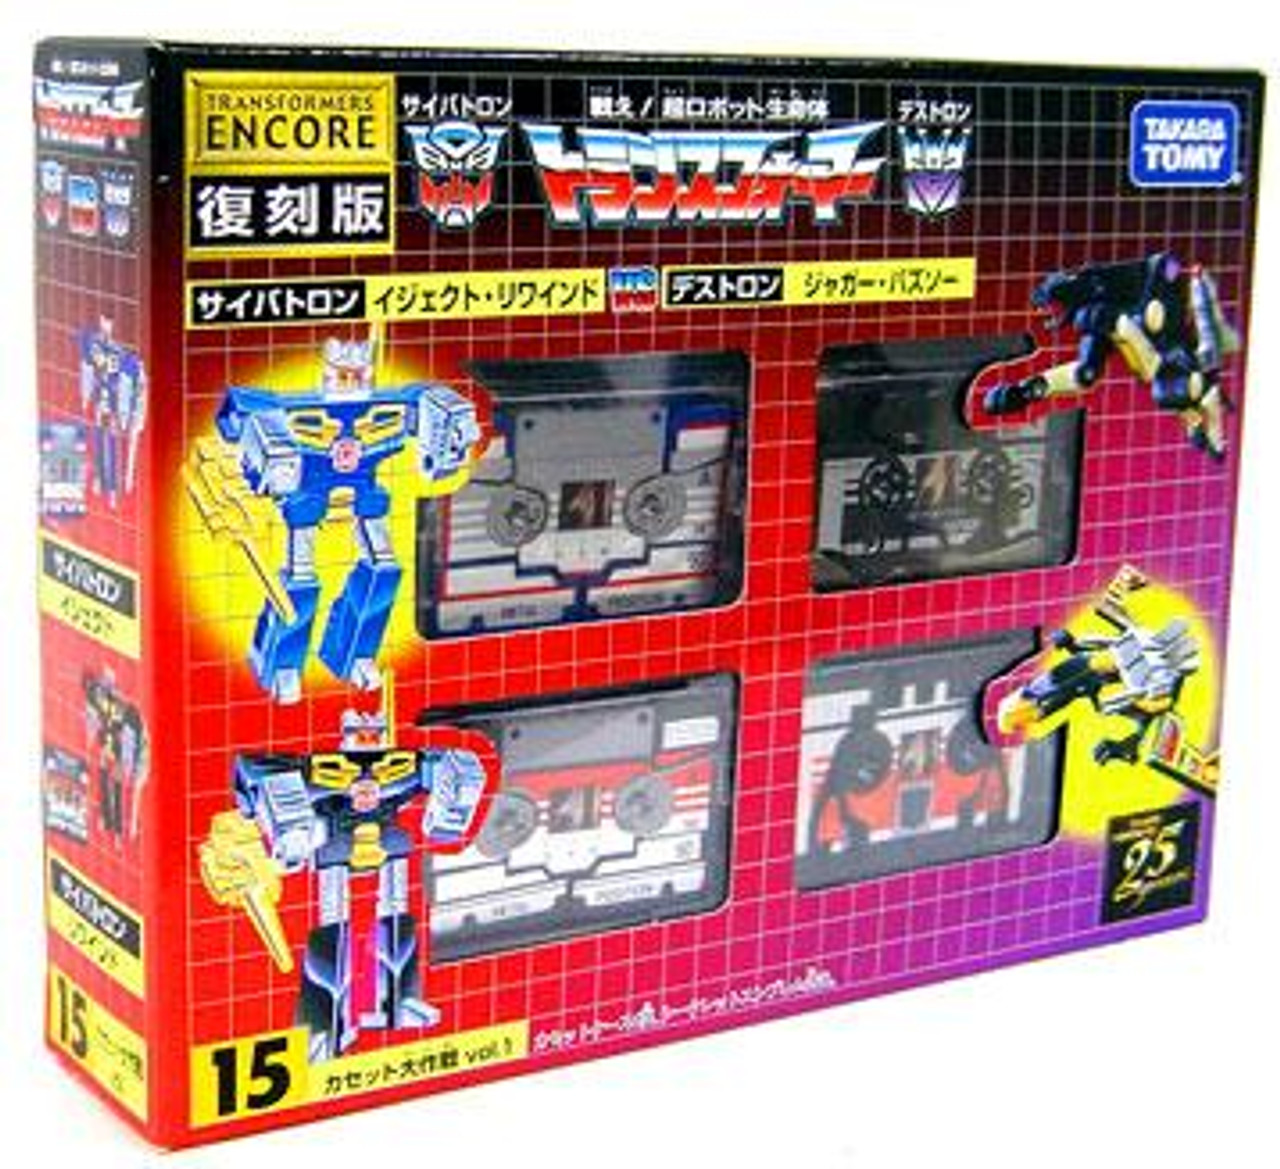 Transformers Japanese Renewal Encore Cassettes Action Figure Set #15 [#15]